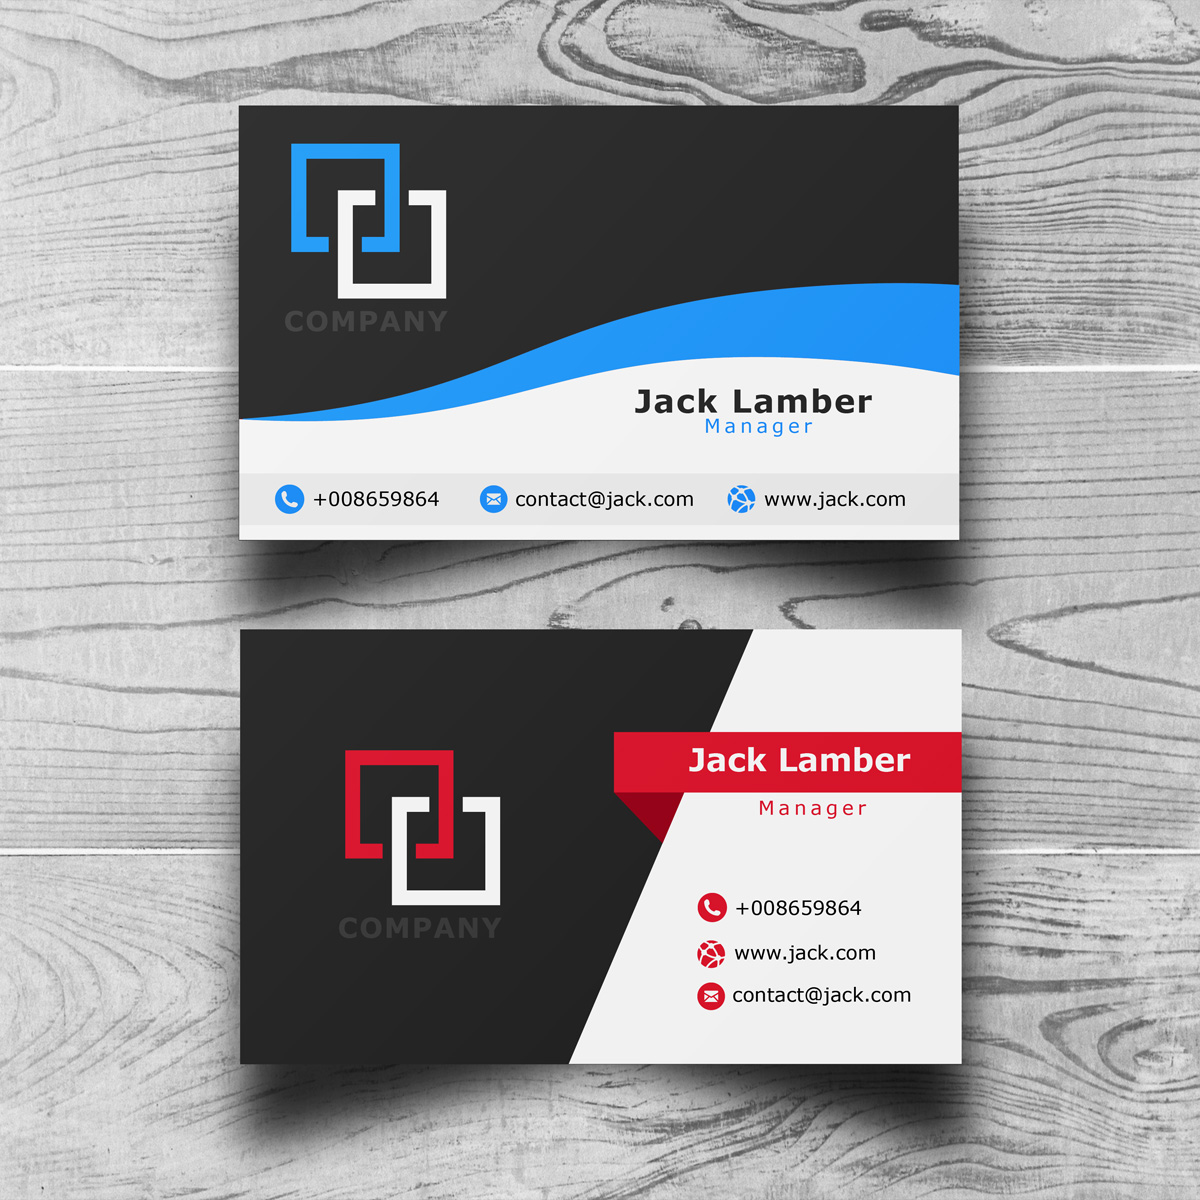 Design 3 Stunning Business Cards with PSD Source in 24 Hours